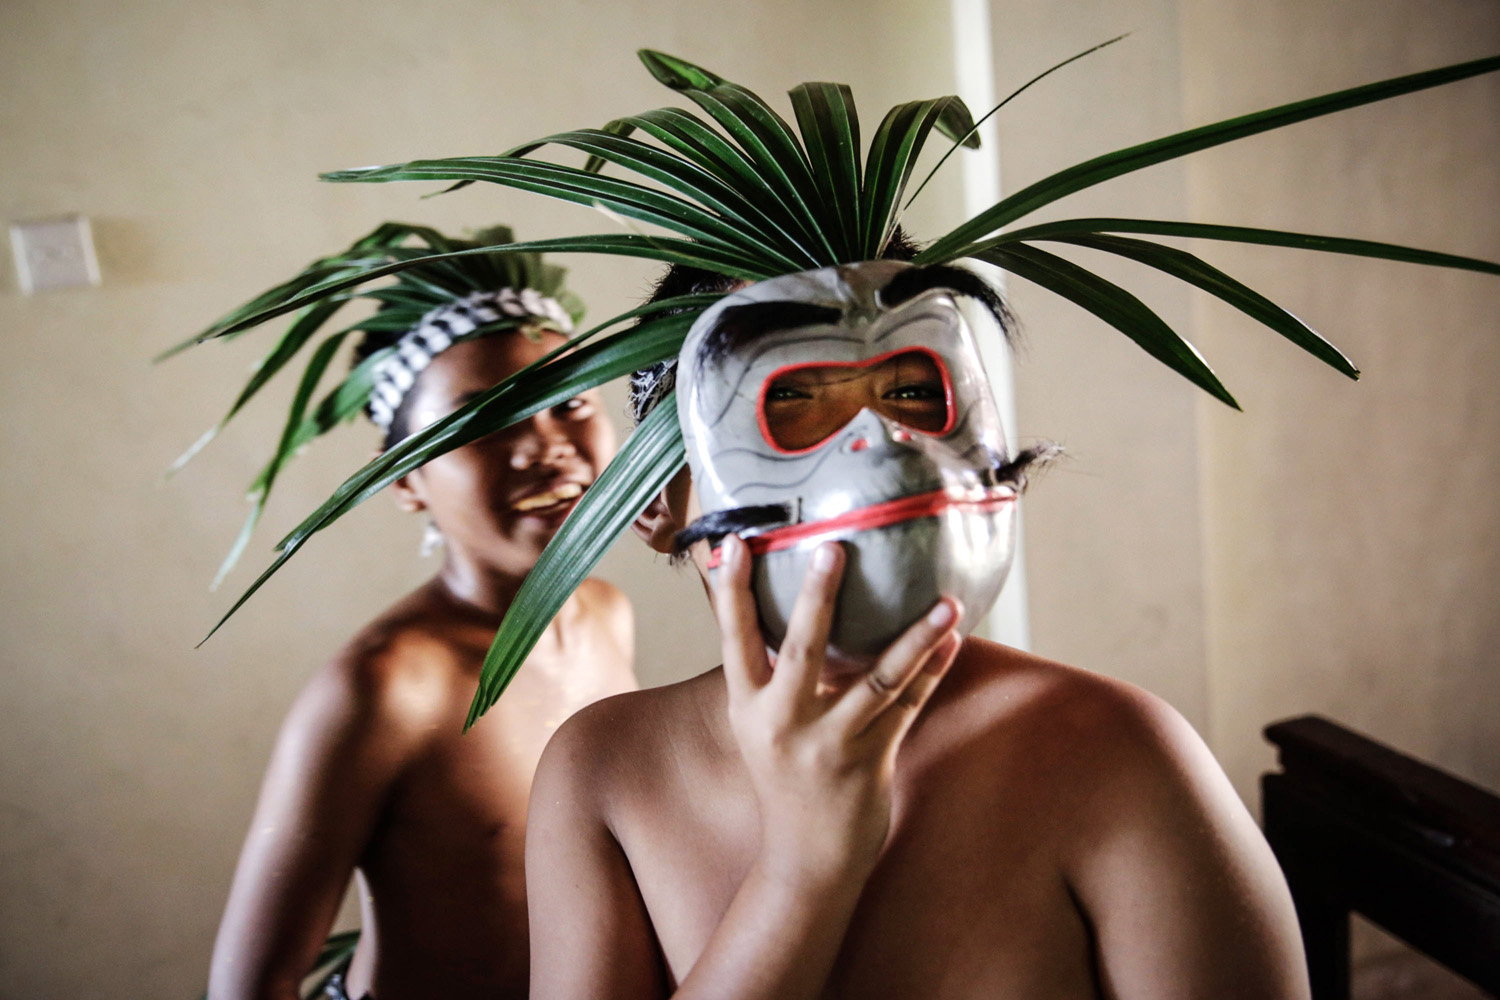 A boy plays with a monkey mask before taking part in a parade for the opening of the Bali International Arts Festival on June 13, 2014 in Denpasar, Indonesia.